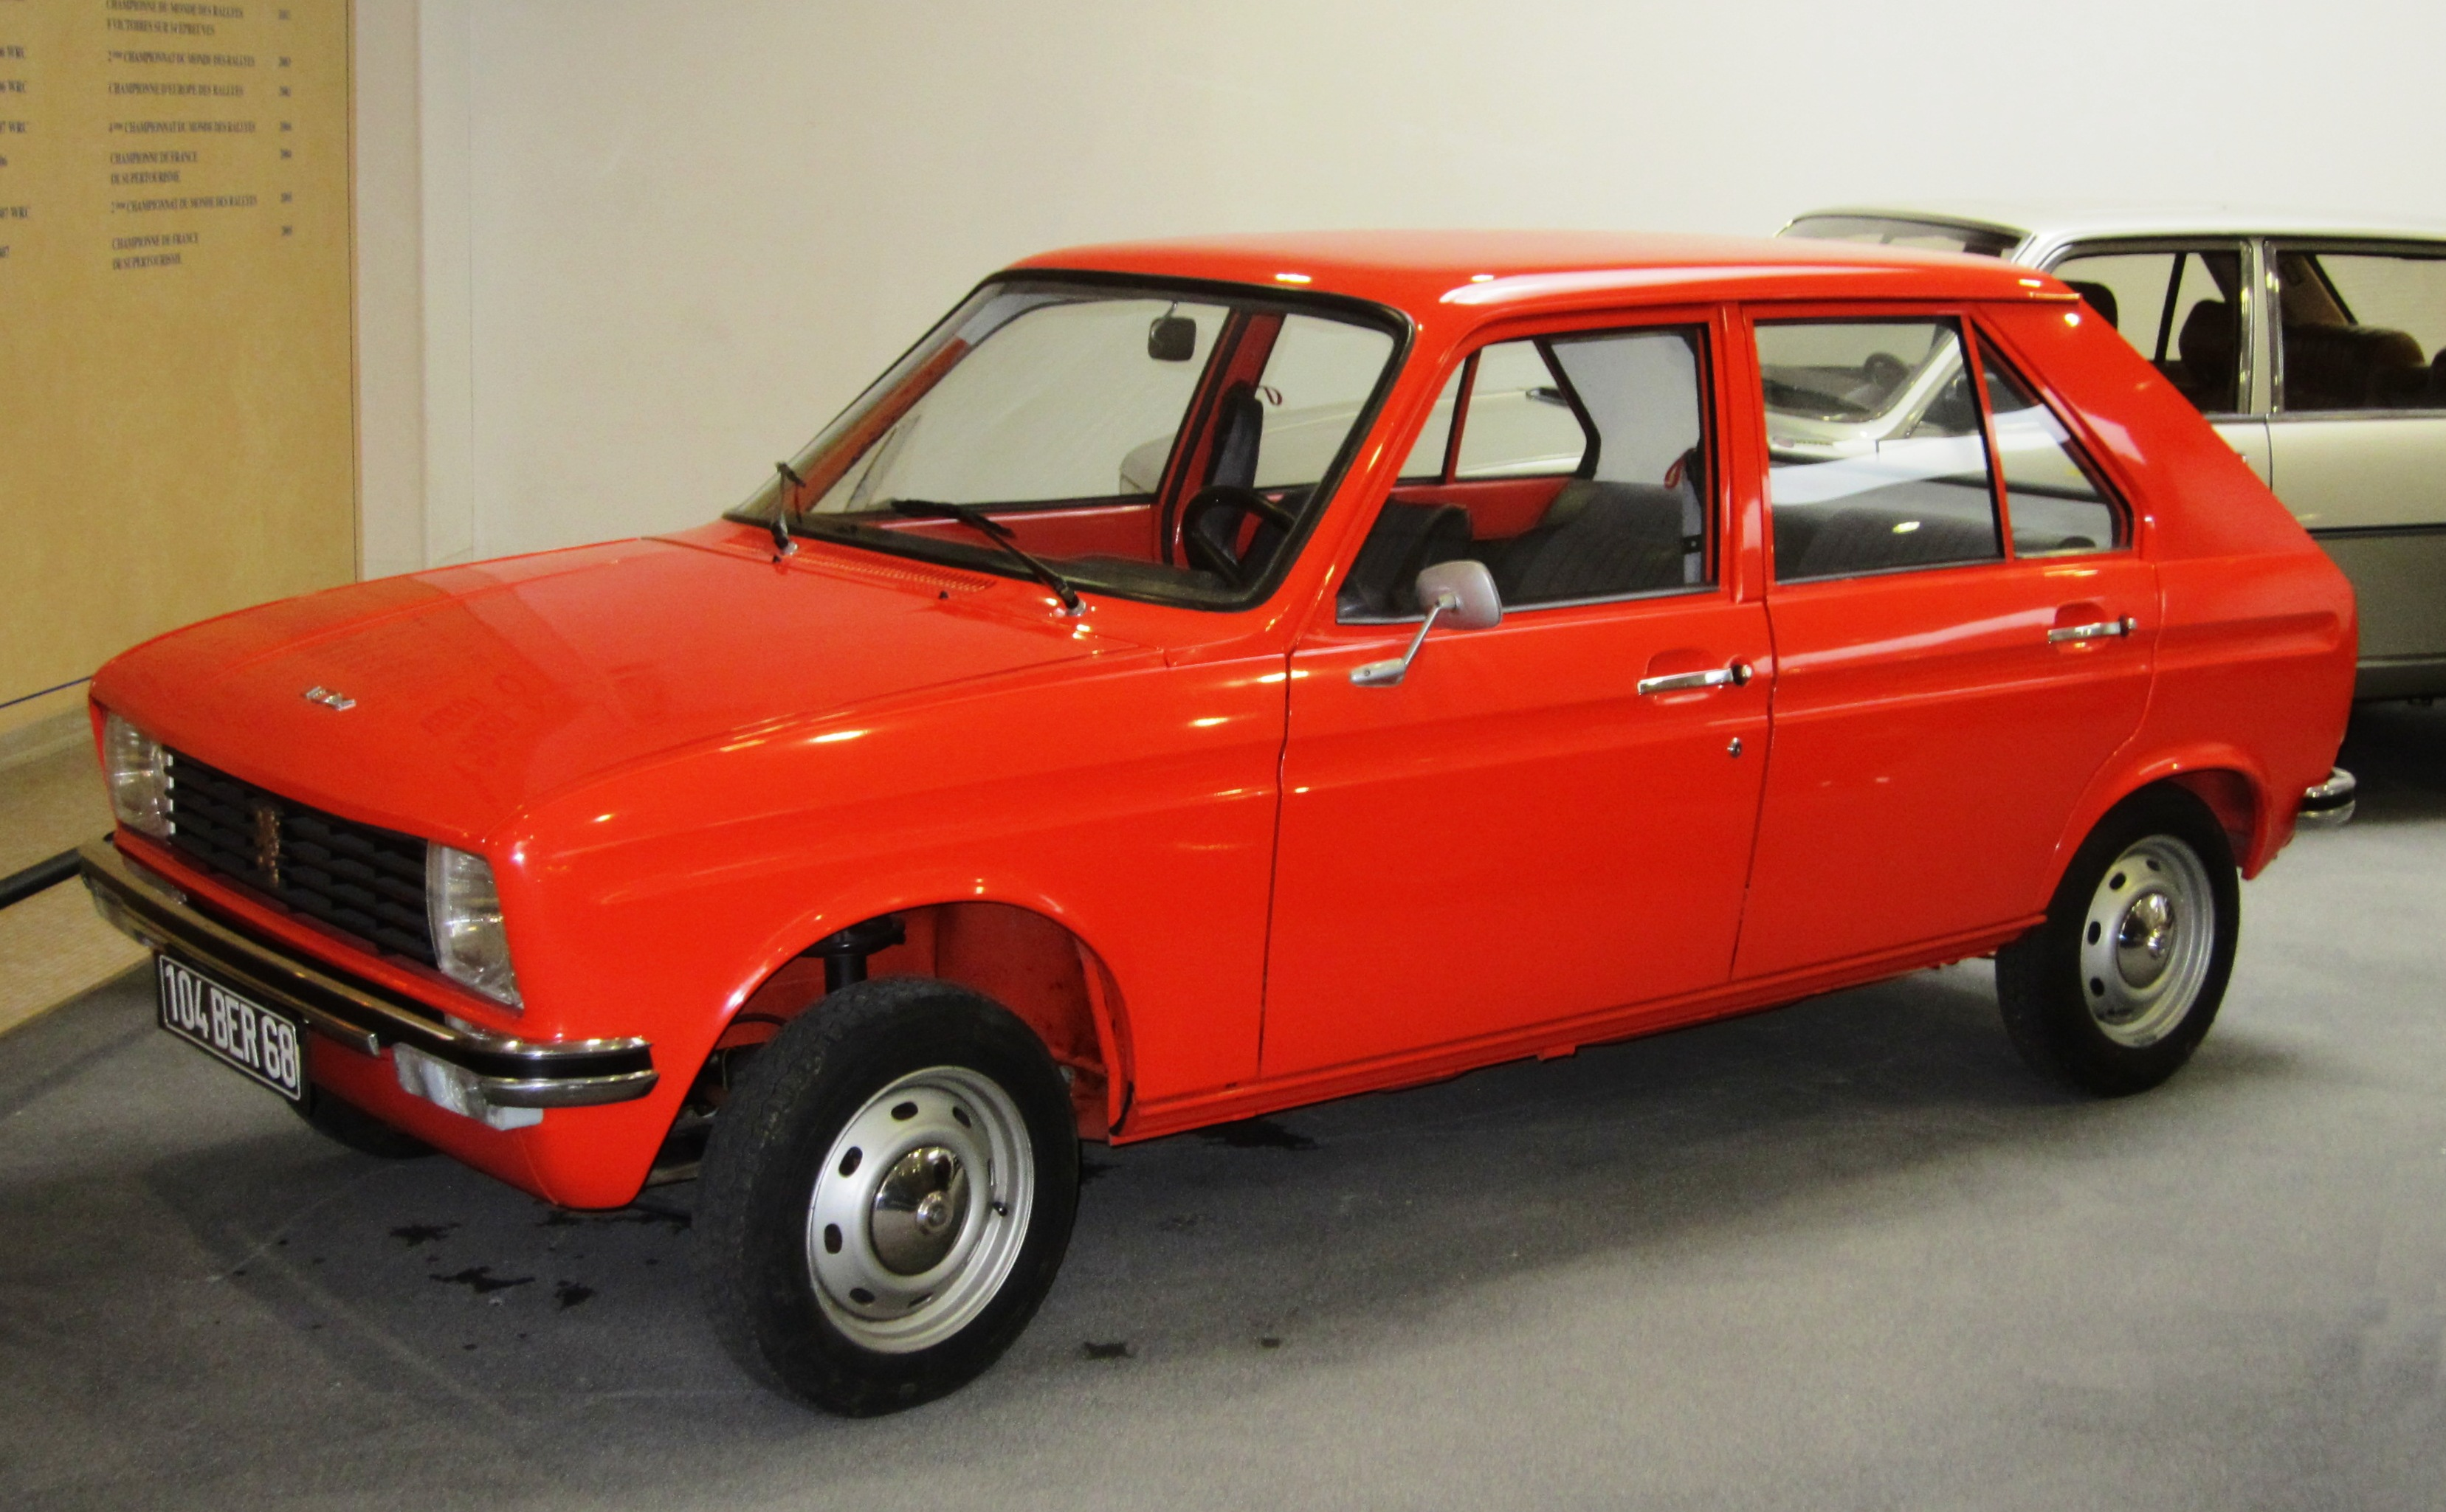 File:Peugeot 104 (early one) at Peugeot Museum in Sochaux.JPG